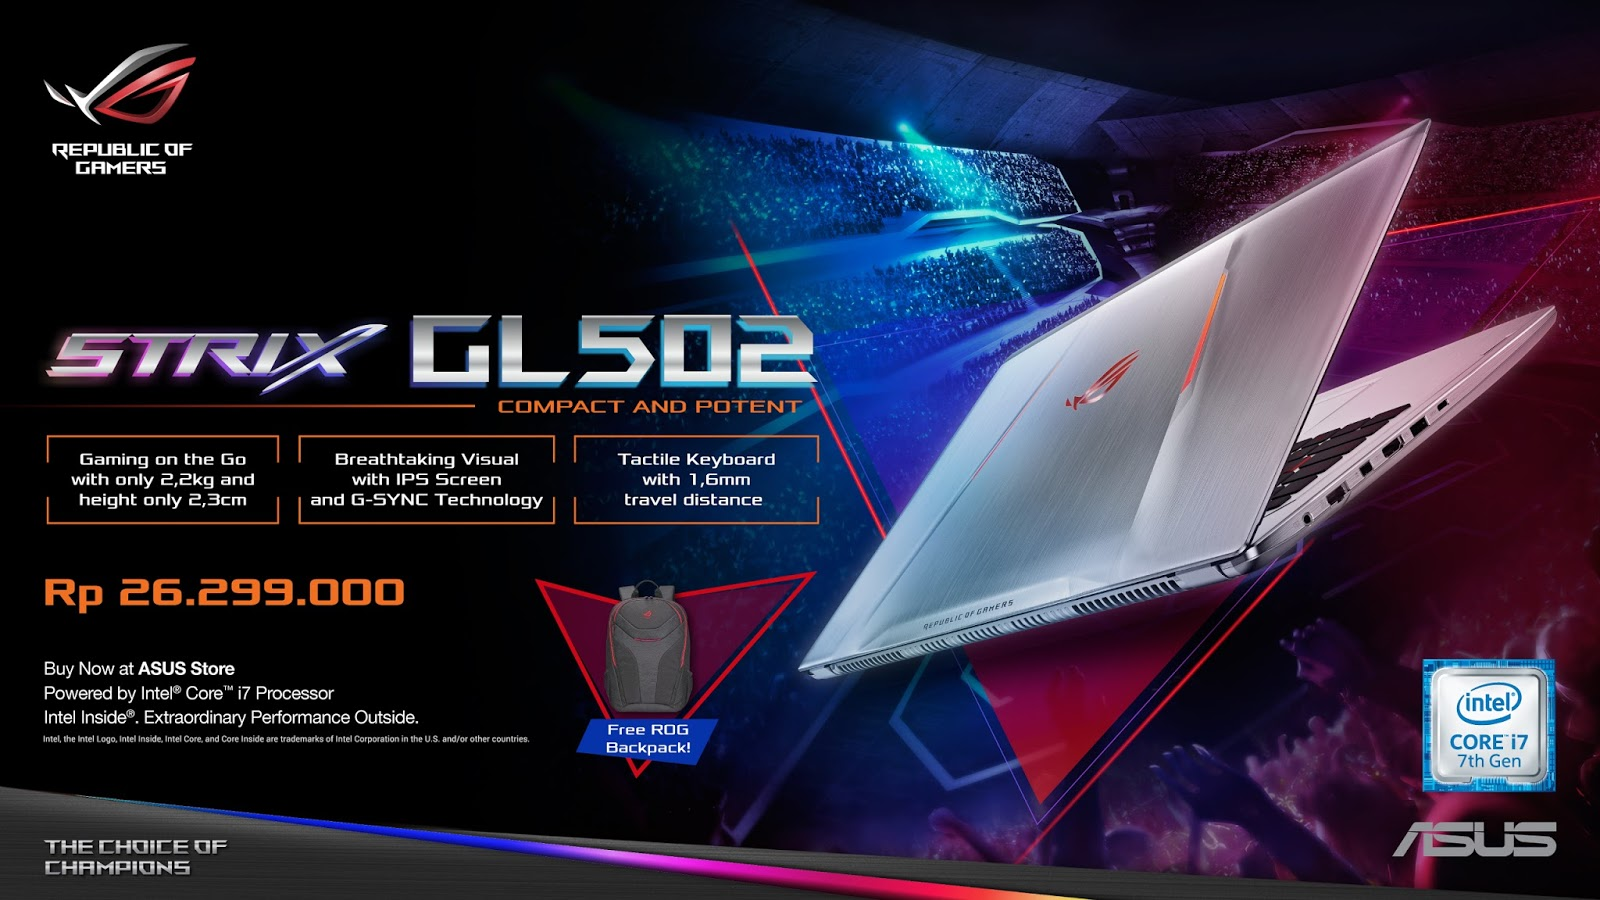 ASUS ROG STRIX GL502VM - Republic of Gamers